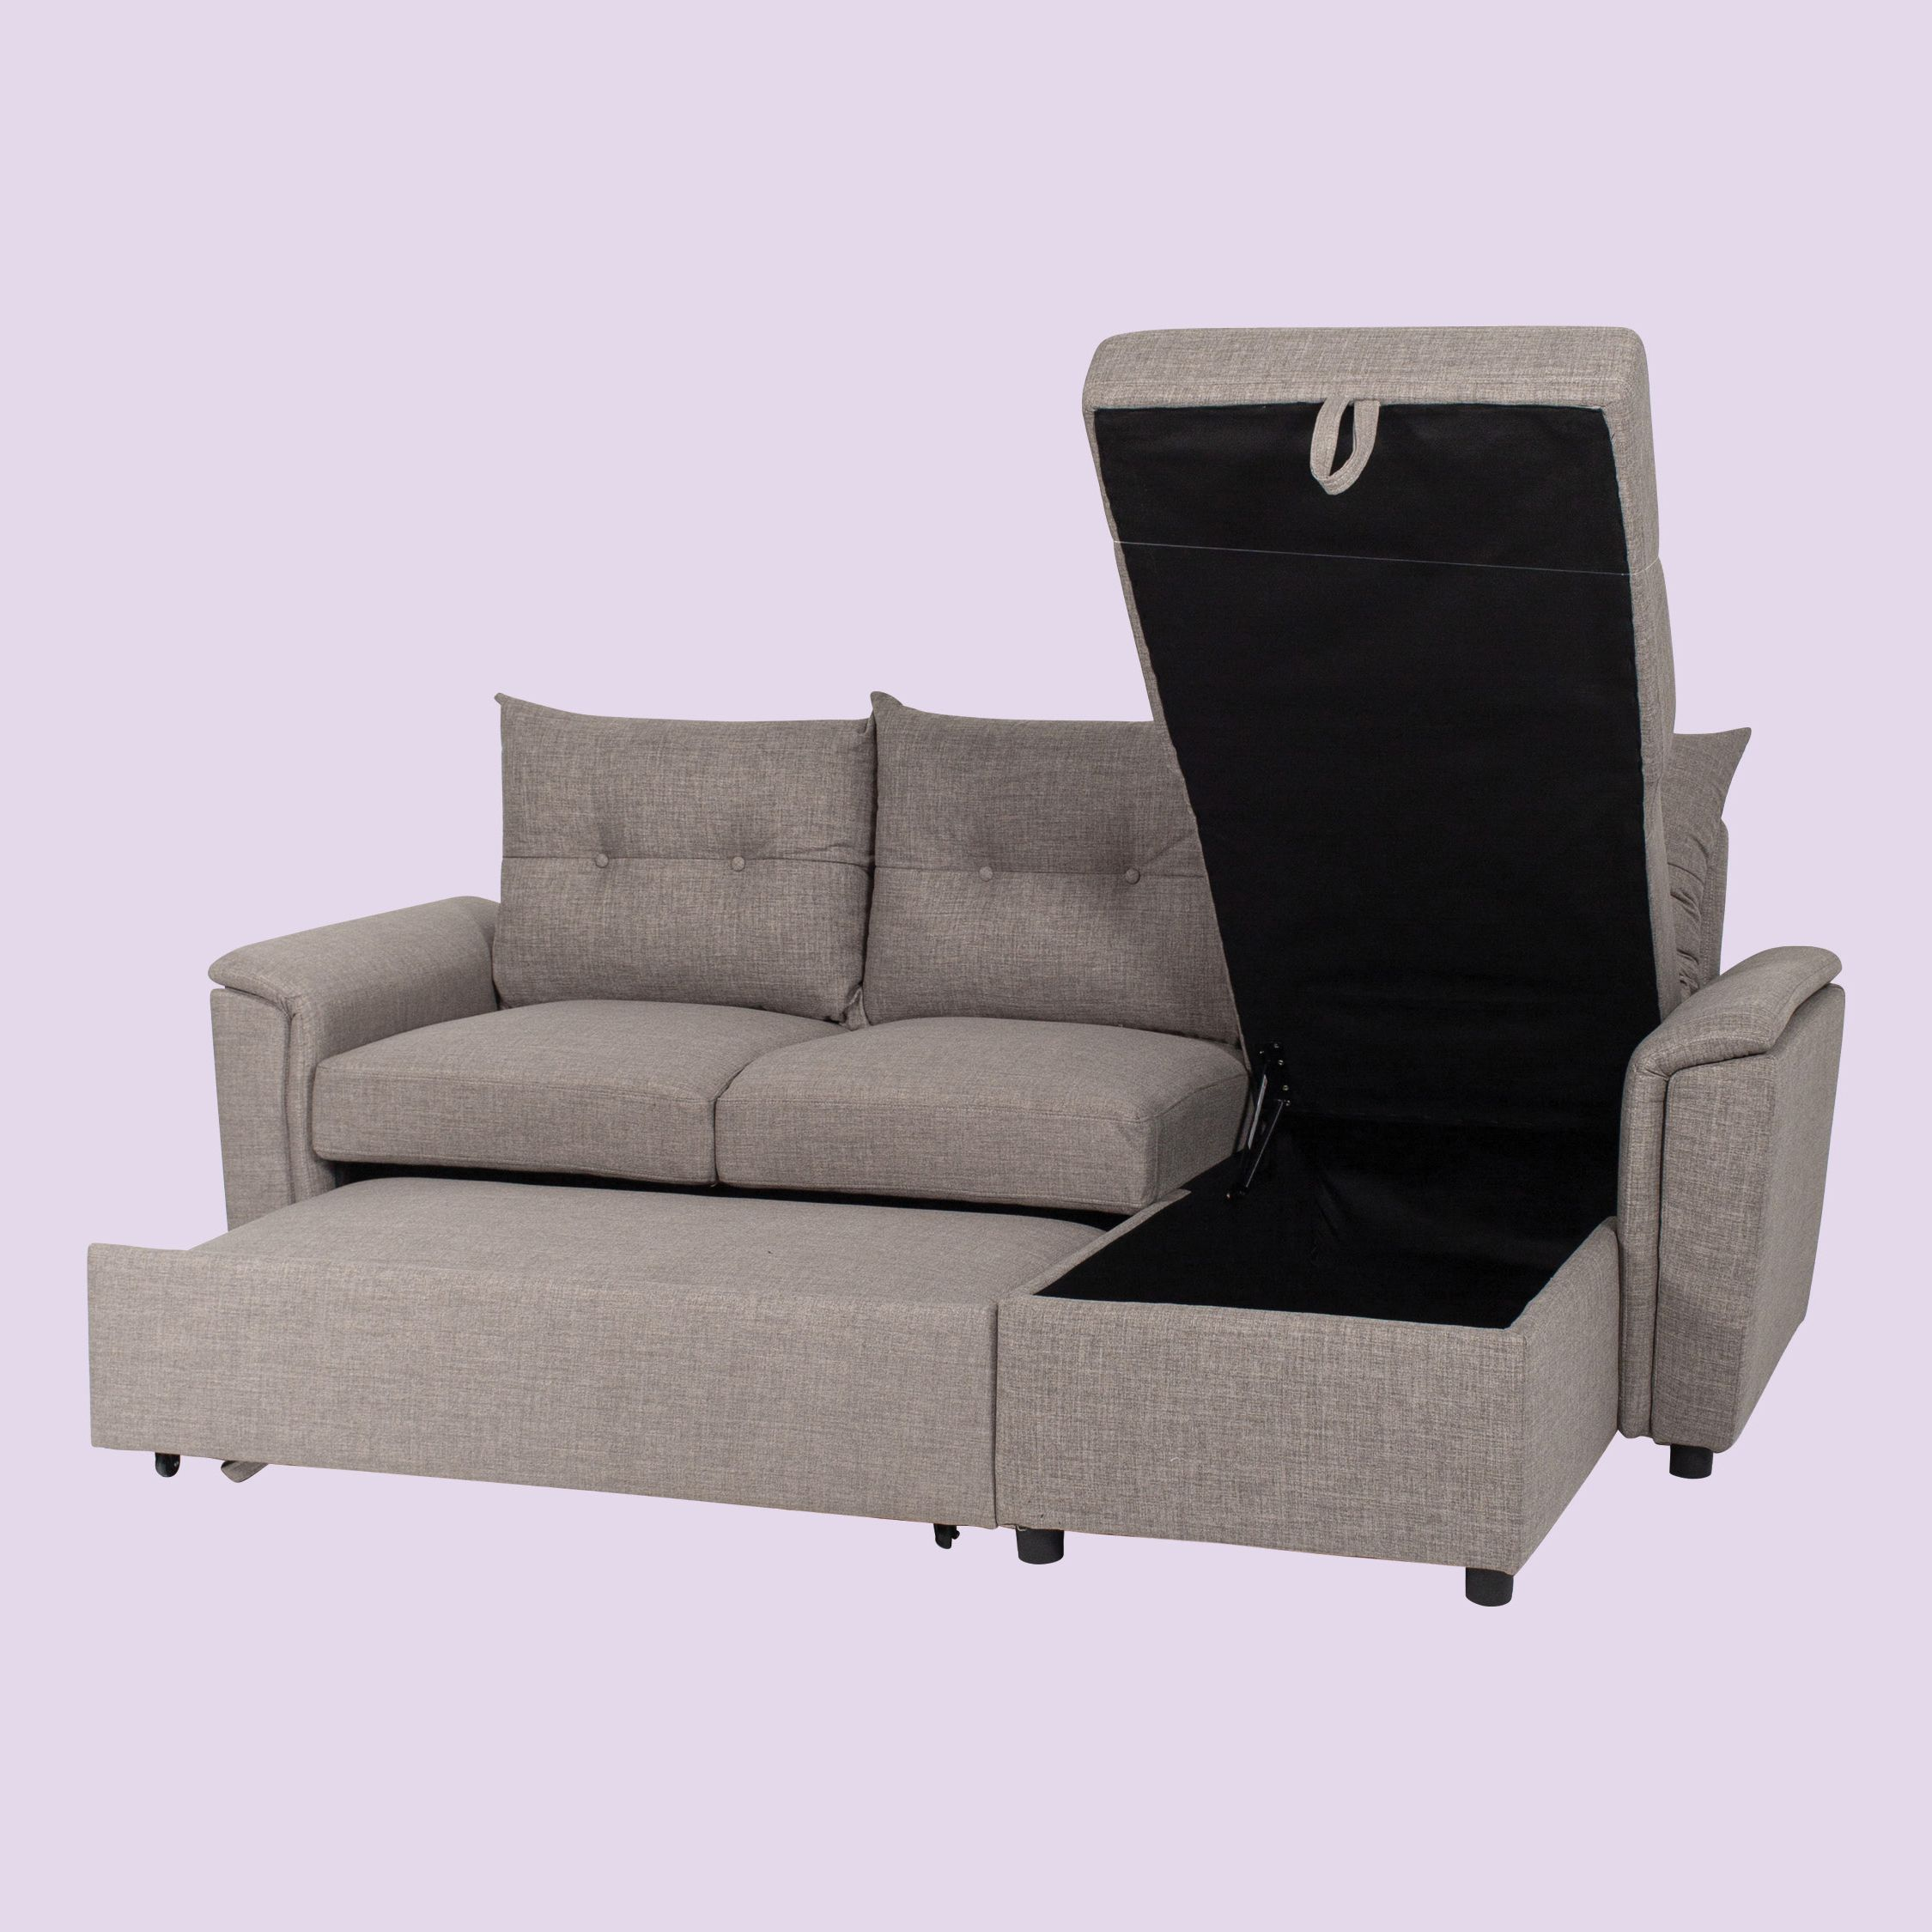 L Shape Sofa Bed with Storage   Sofa bed with storage ...